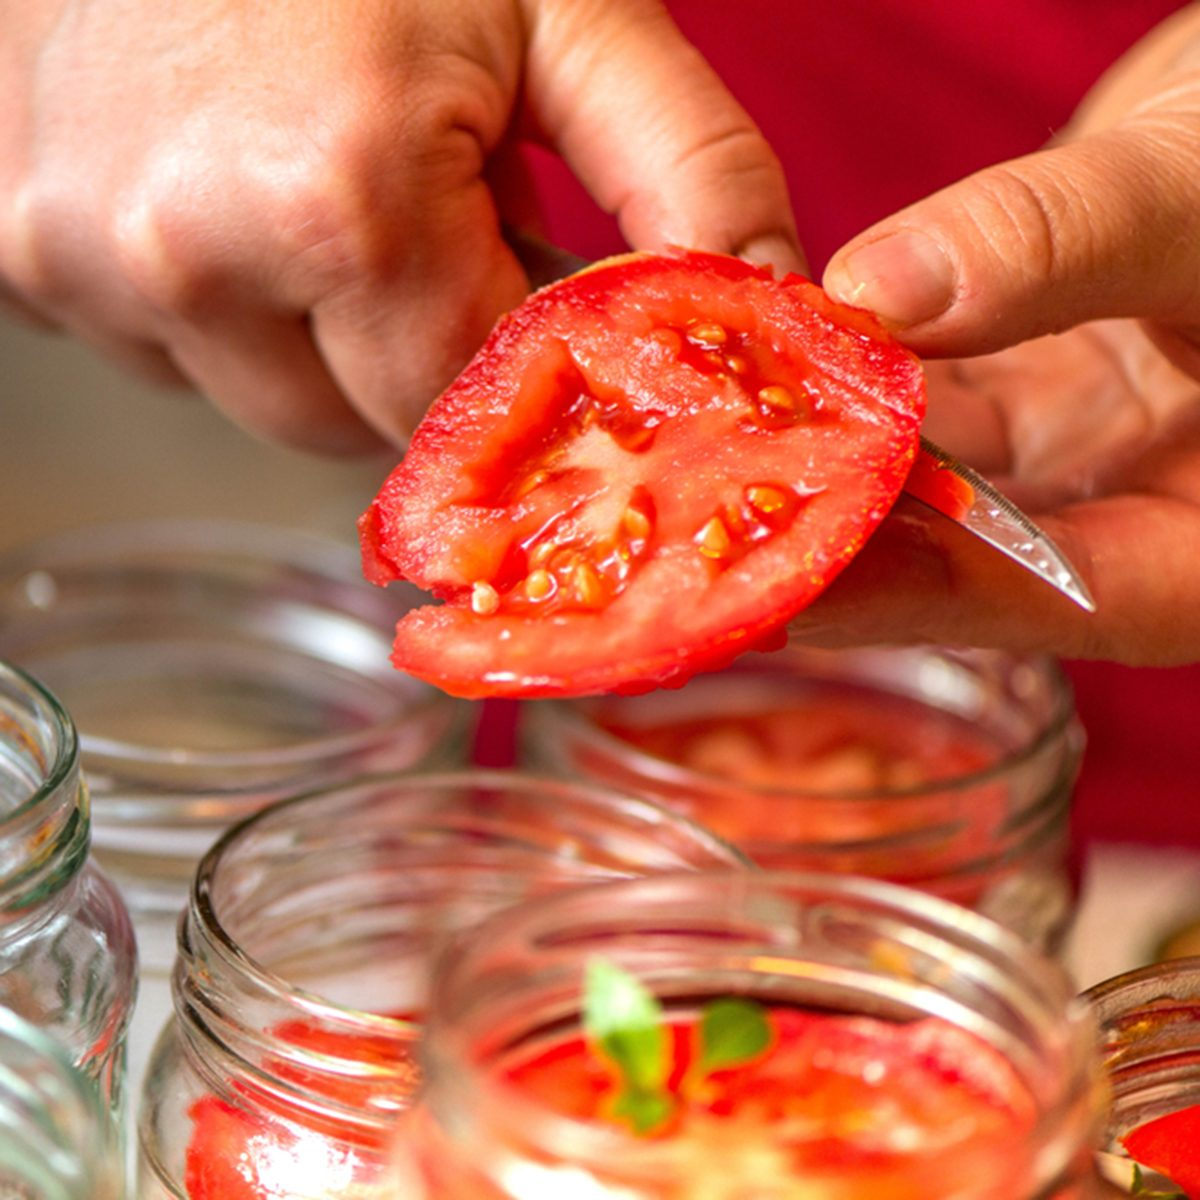 Canning fresh tomatoes with onions in jelly marinade.